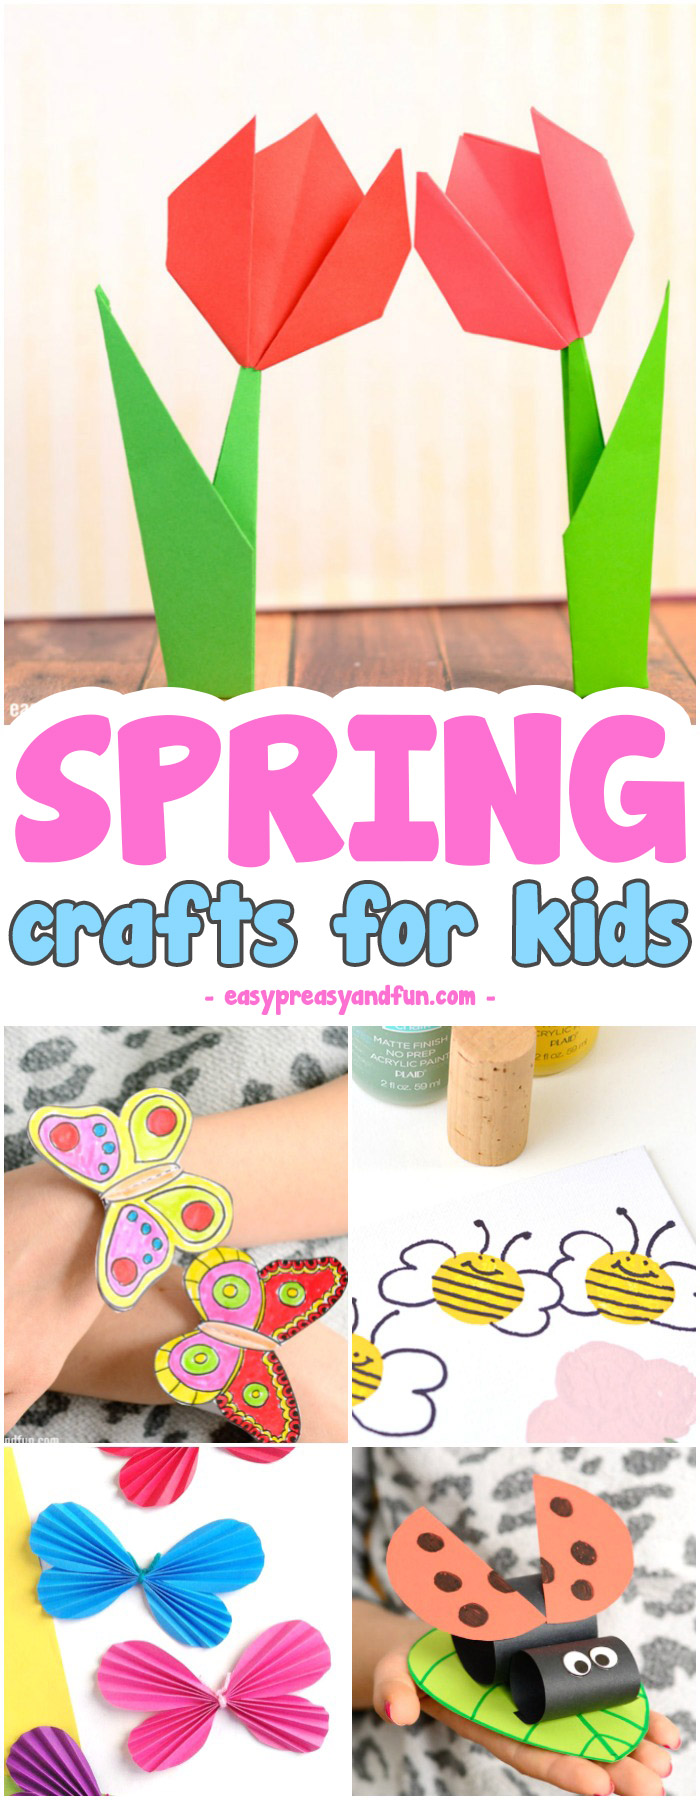 Art Craft Ideas Spring Crafts For Kids Art And Craft Project Ideas For All Ages